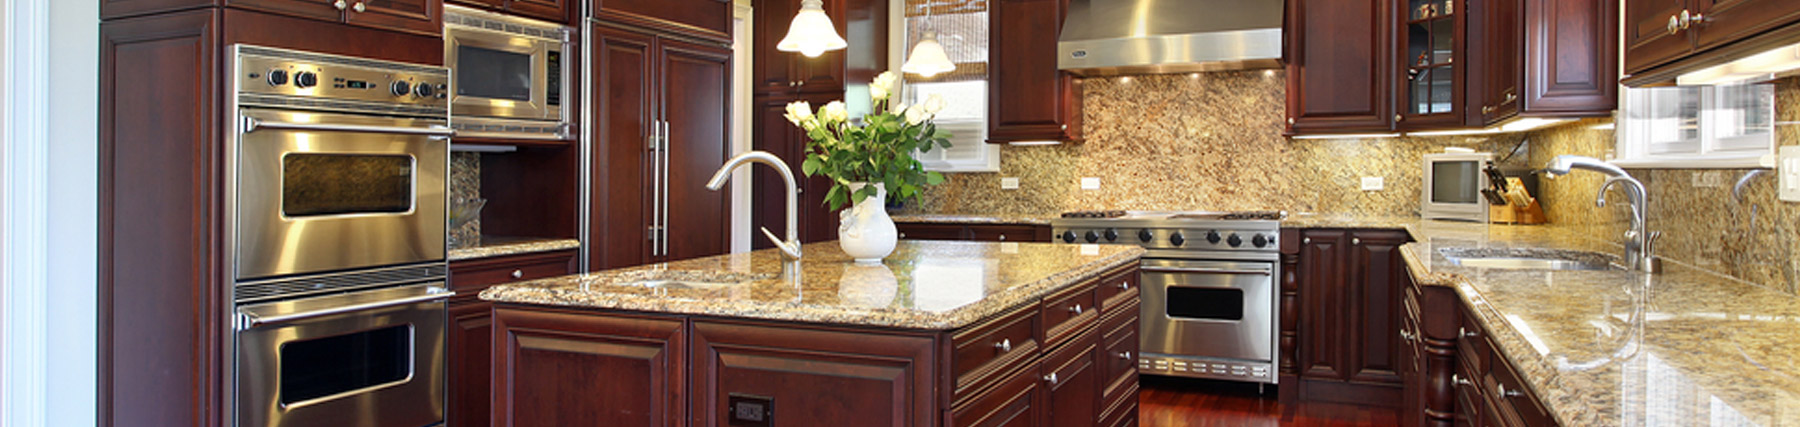 Raleigh Durham Countertops : Licensed, Bonded and Insured